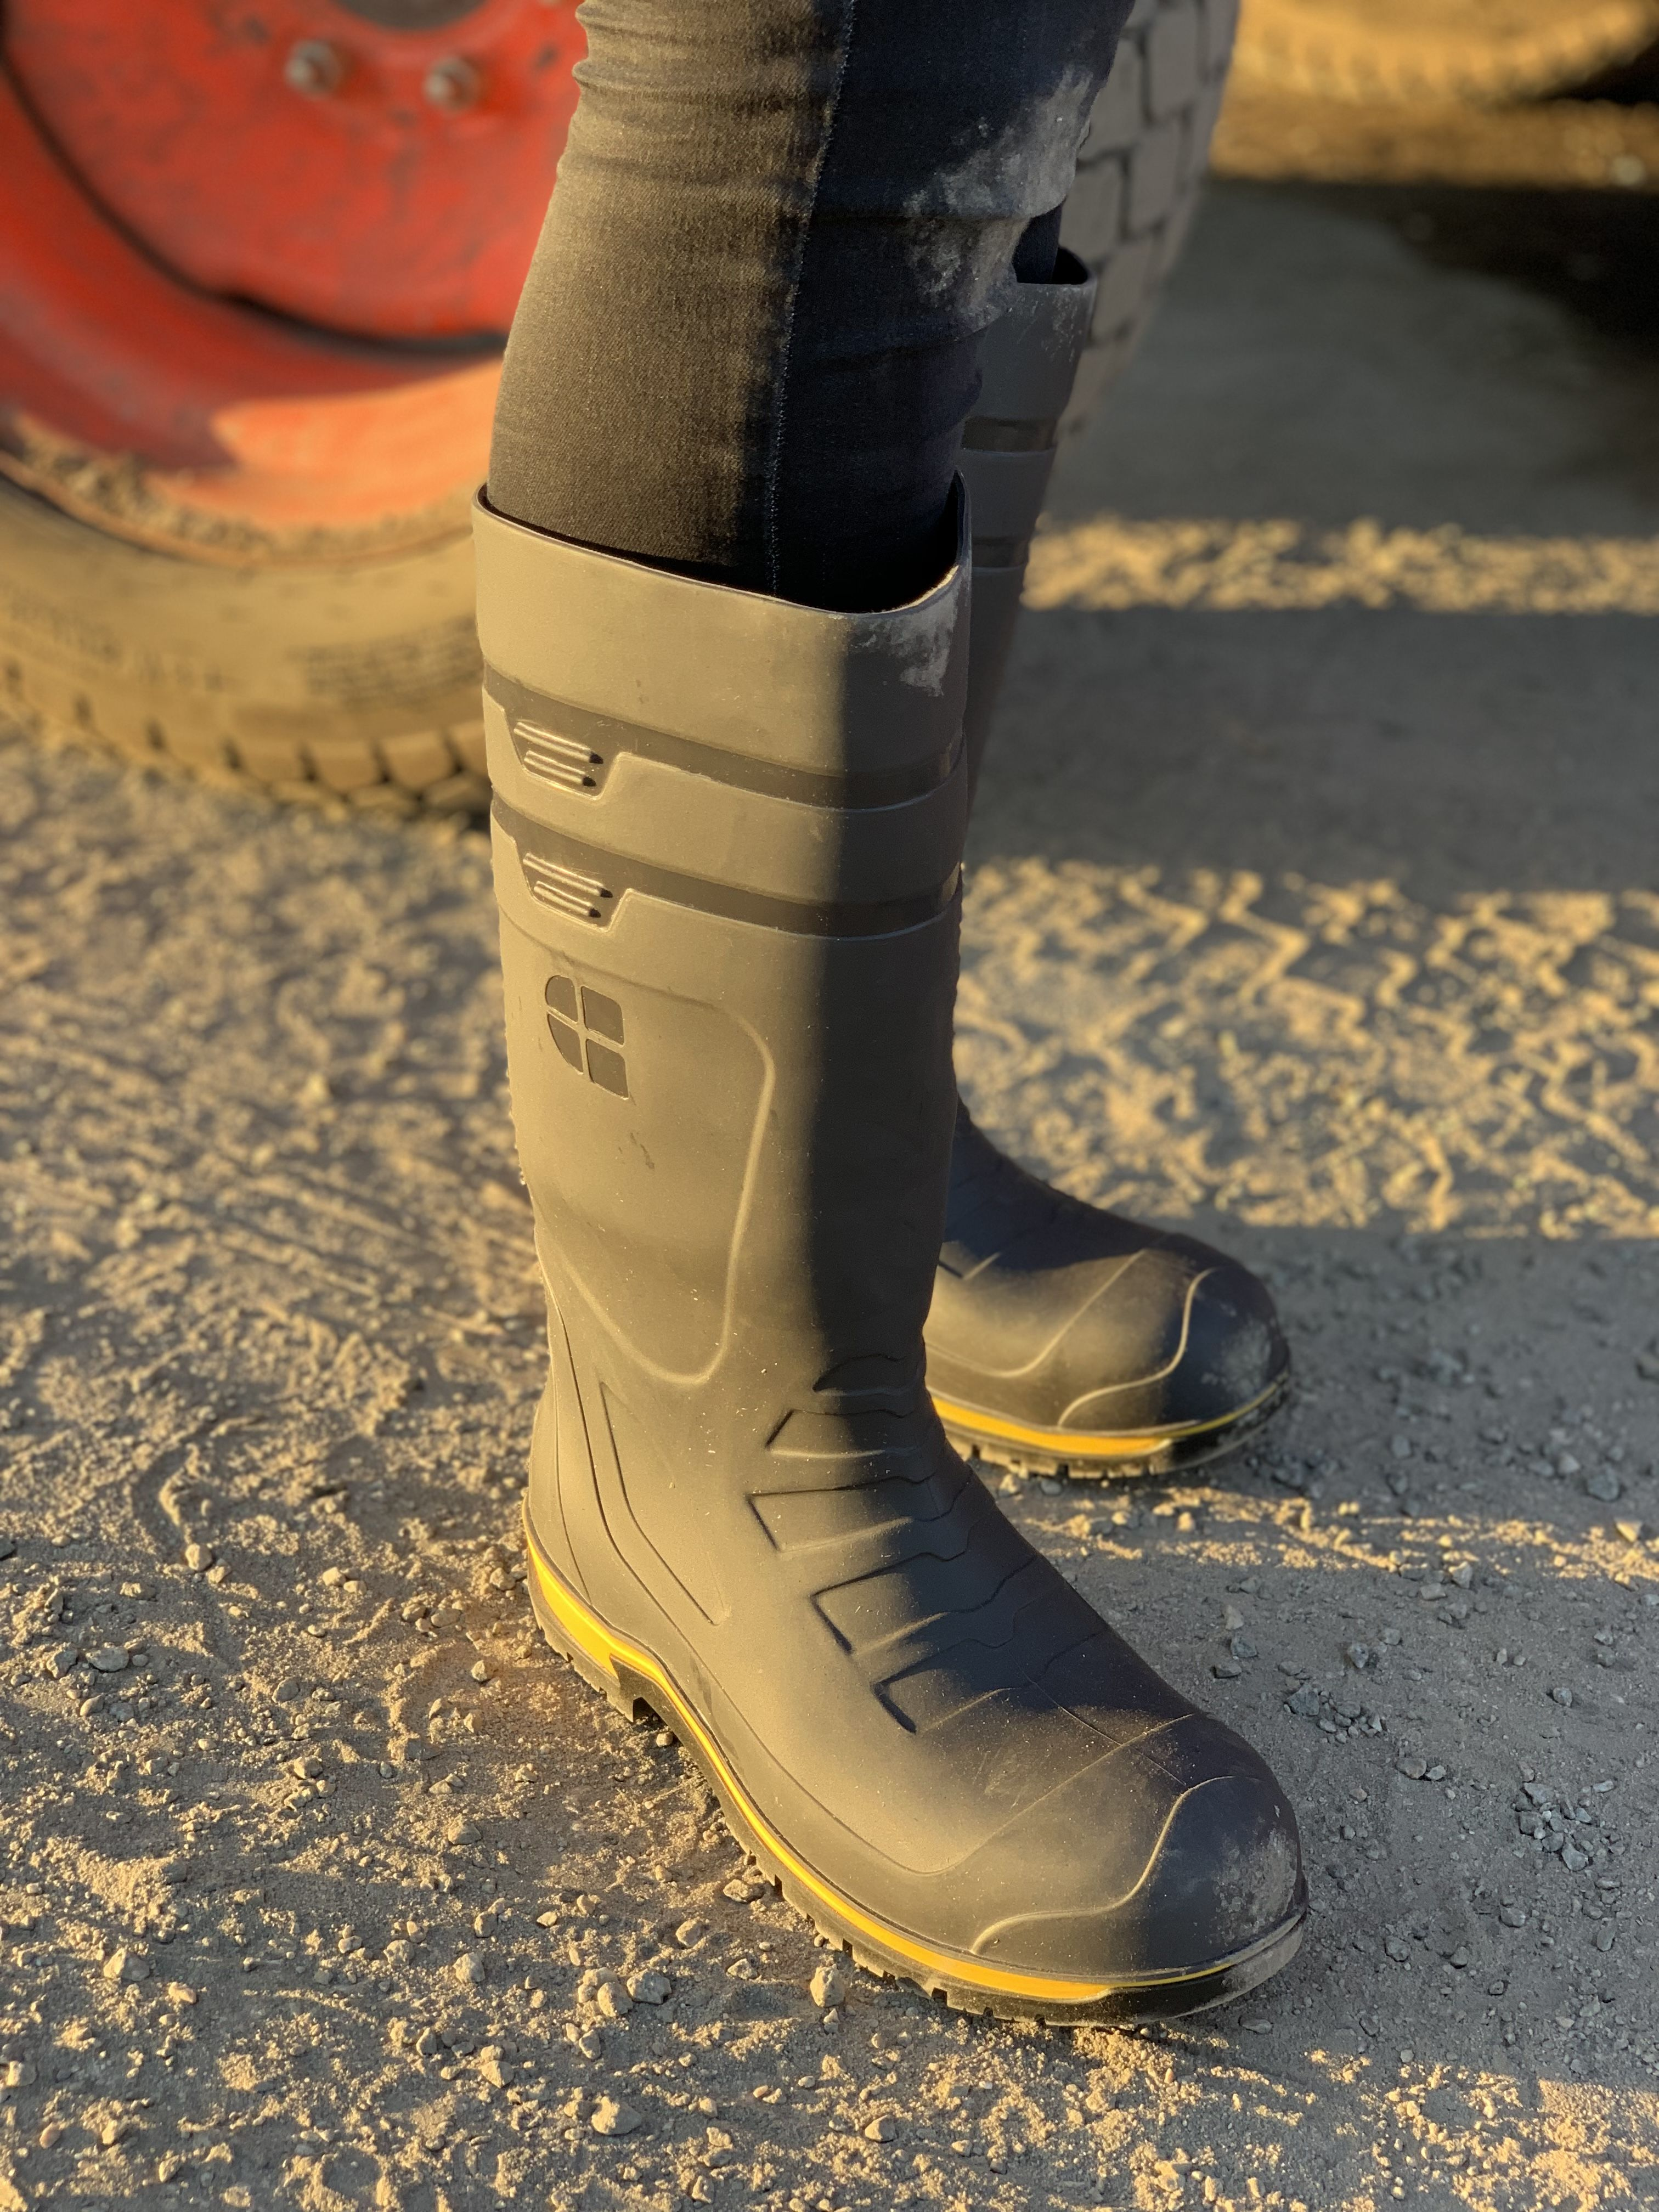 39e5f467492 Torque Pro - Steel Toe - Gray / Yellow | Work Boots in 2019 ...